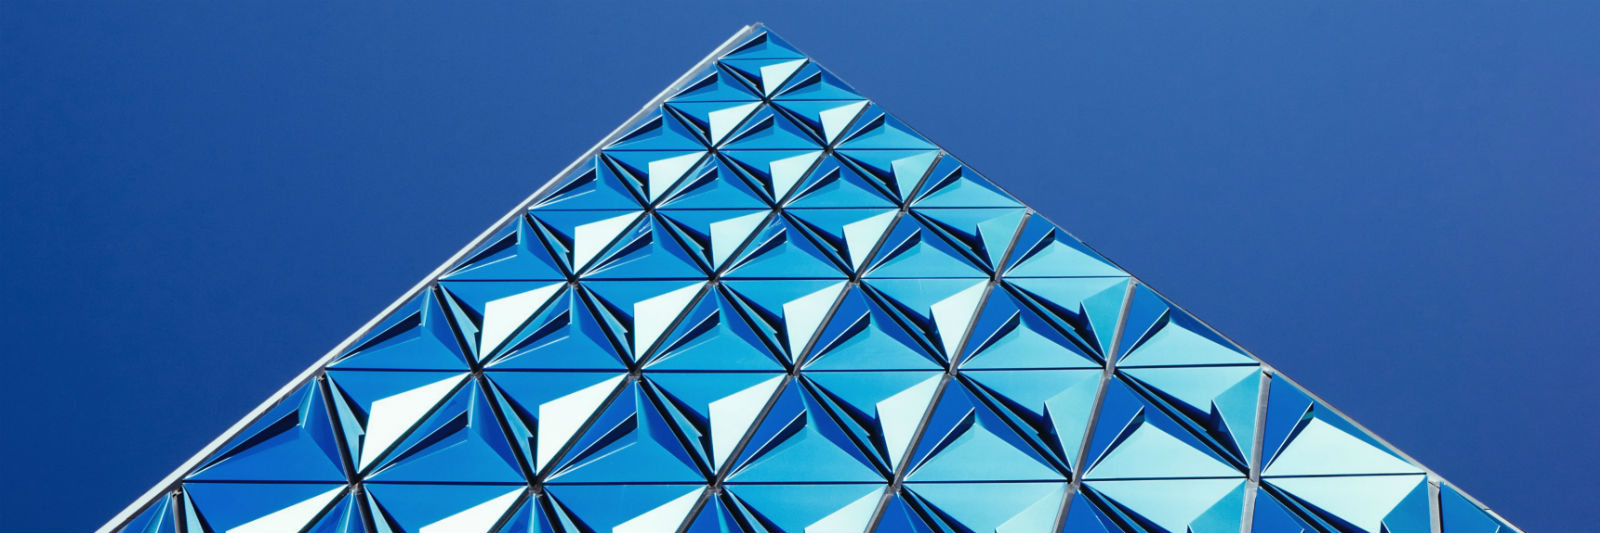 triangles against blue sky